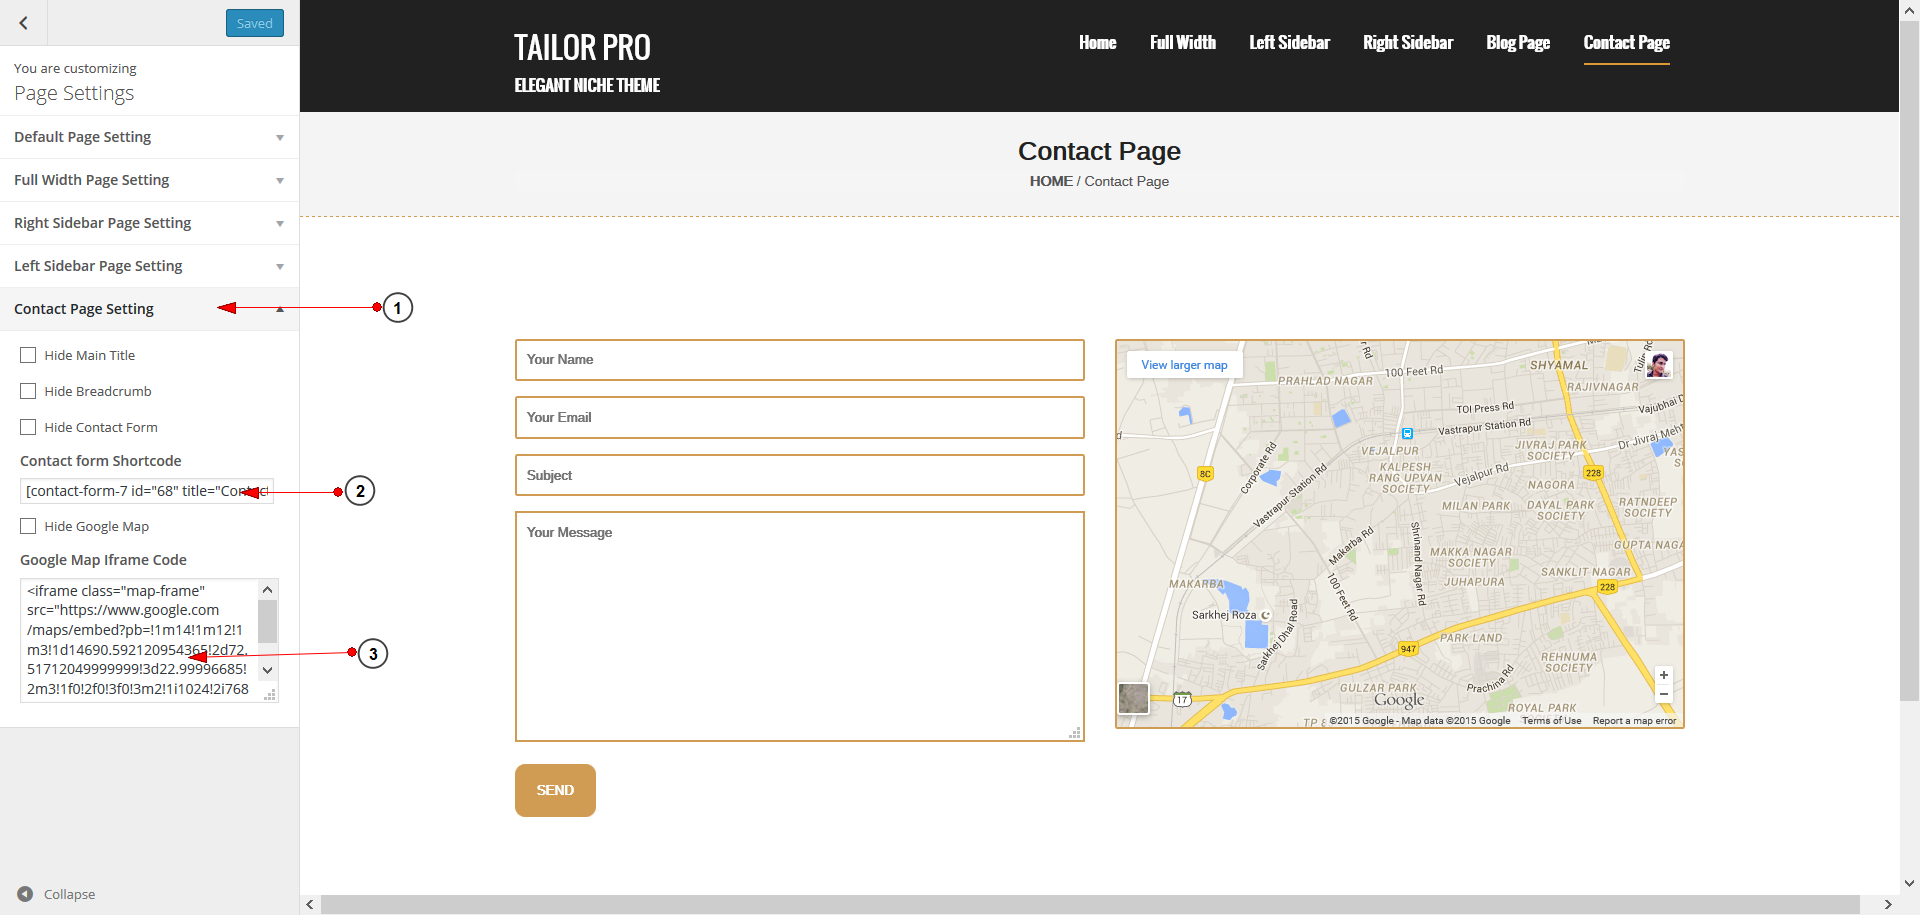 contact page setting